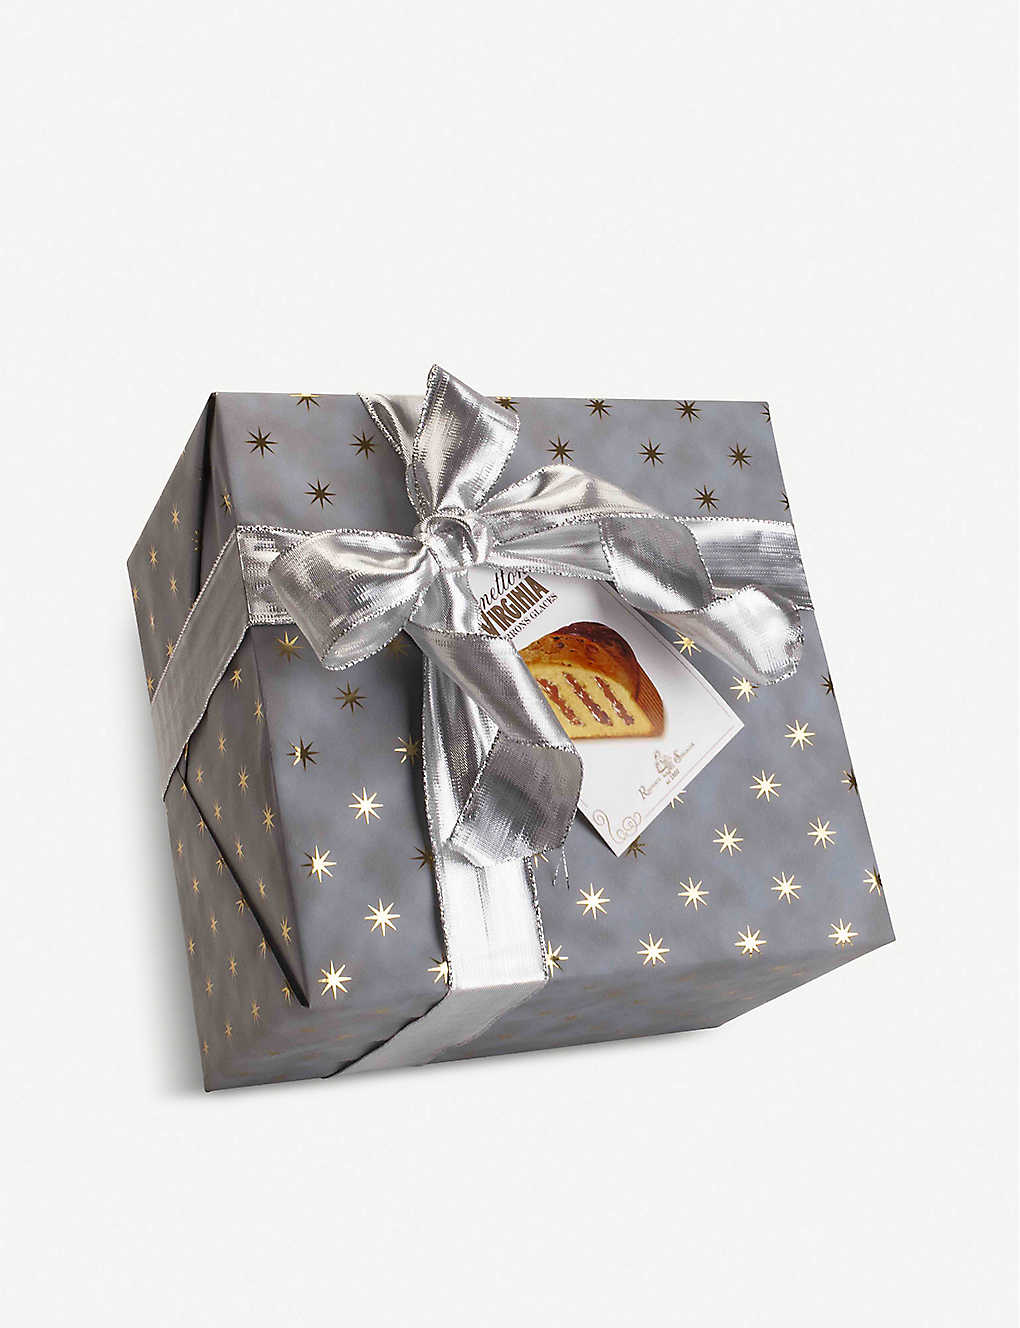 CHRISTMAS: Marrons glaces panettone box 850g